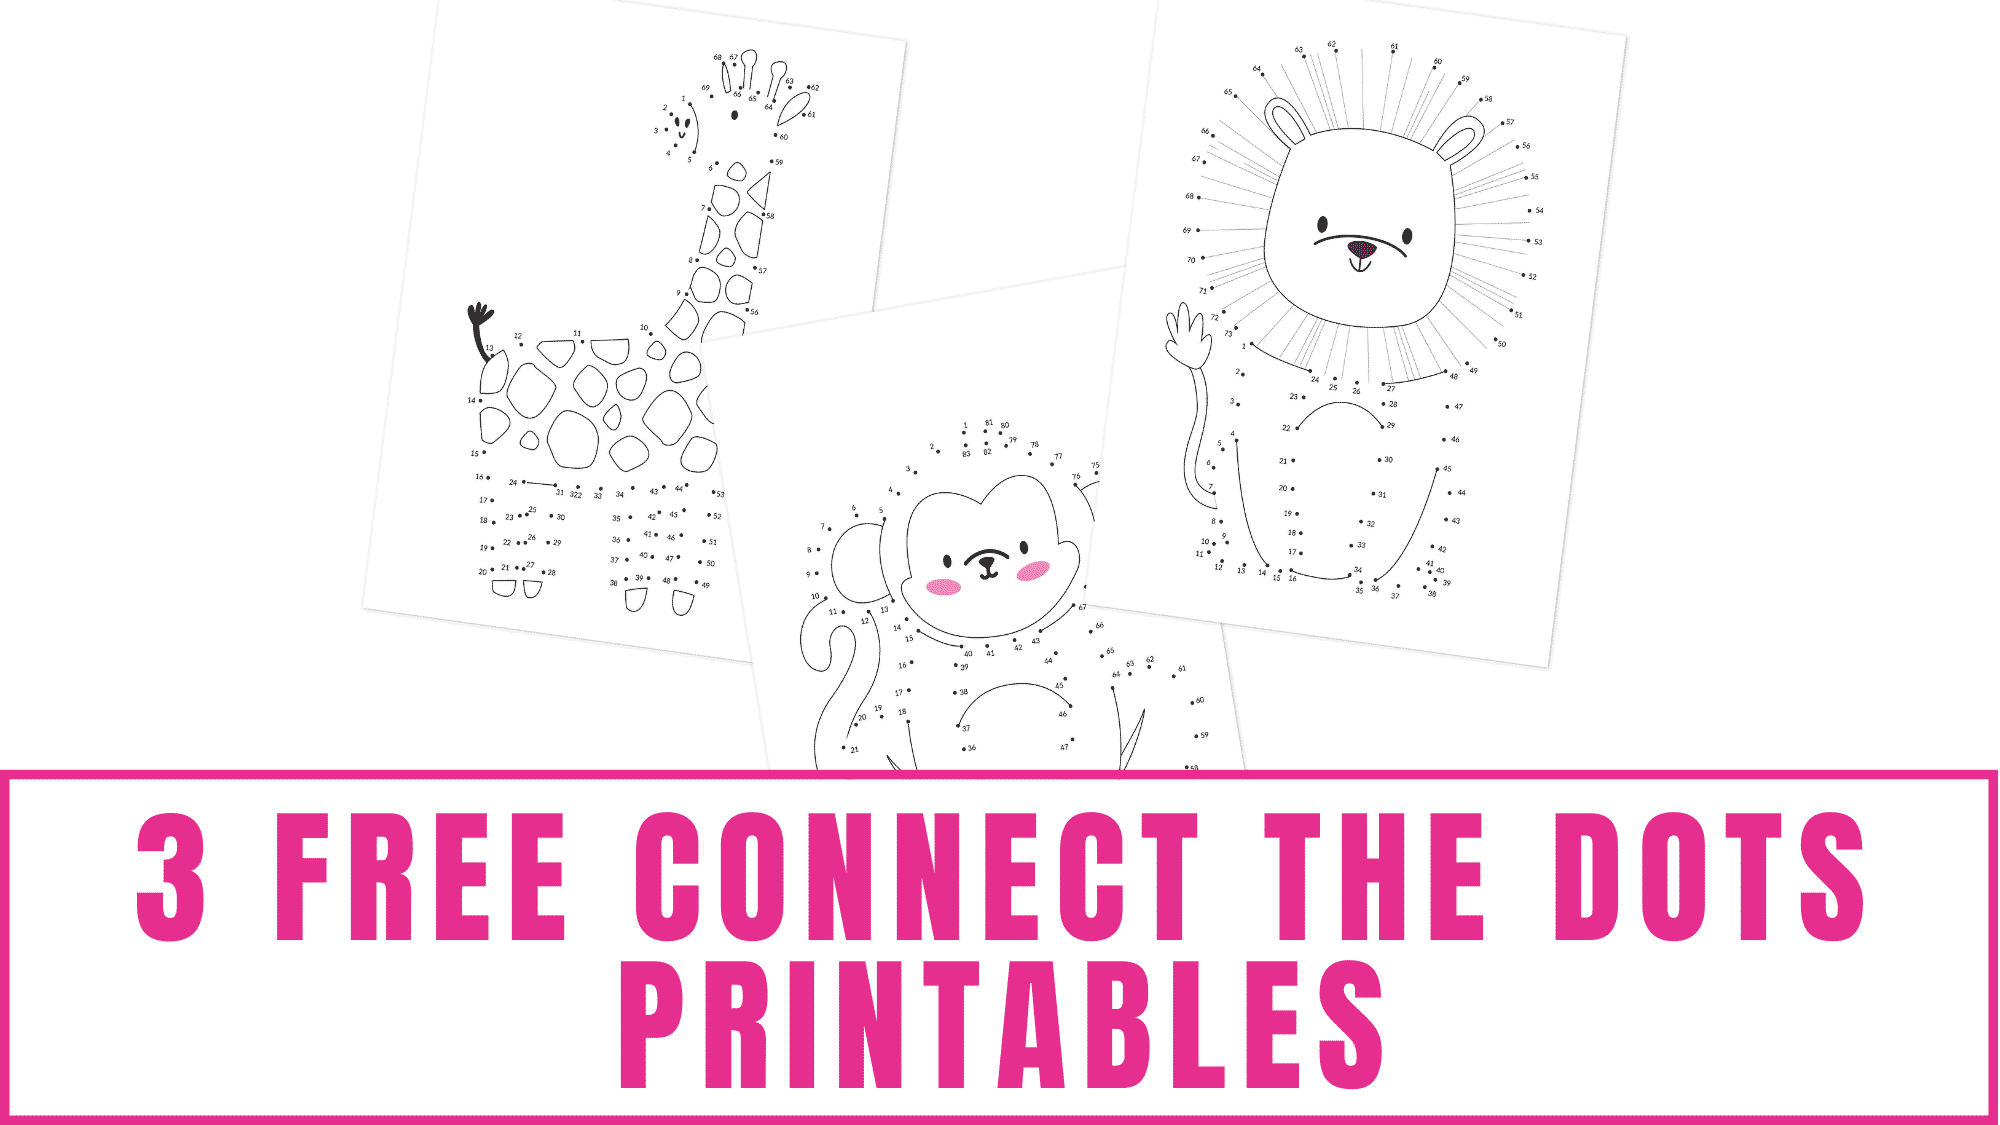 Do you have a kid learning how to count? Using free printable connect the dots worksheets like these free connect the dots printables is a great way to get them excited about learning.